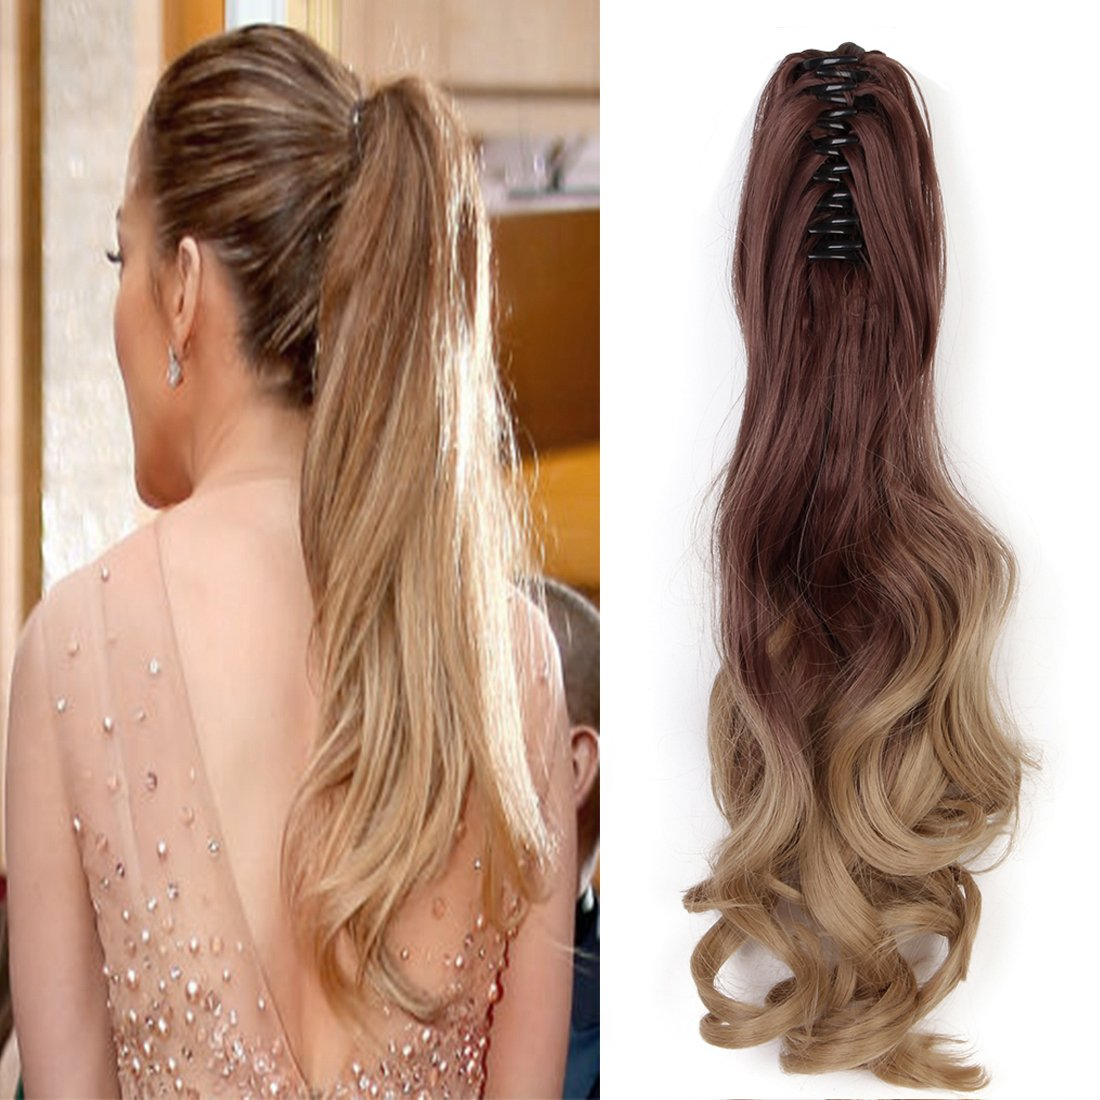 Neverland Beauty 20(50cm) Ombre Two Tone Long Big Wavy Claw Curly Ponytail Clip in Hair Extensions 8#/25#